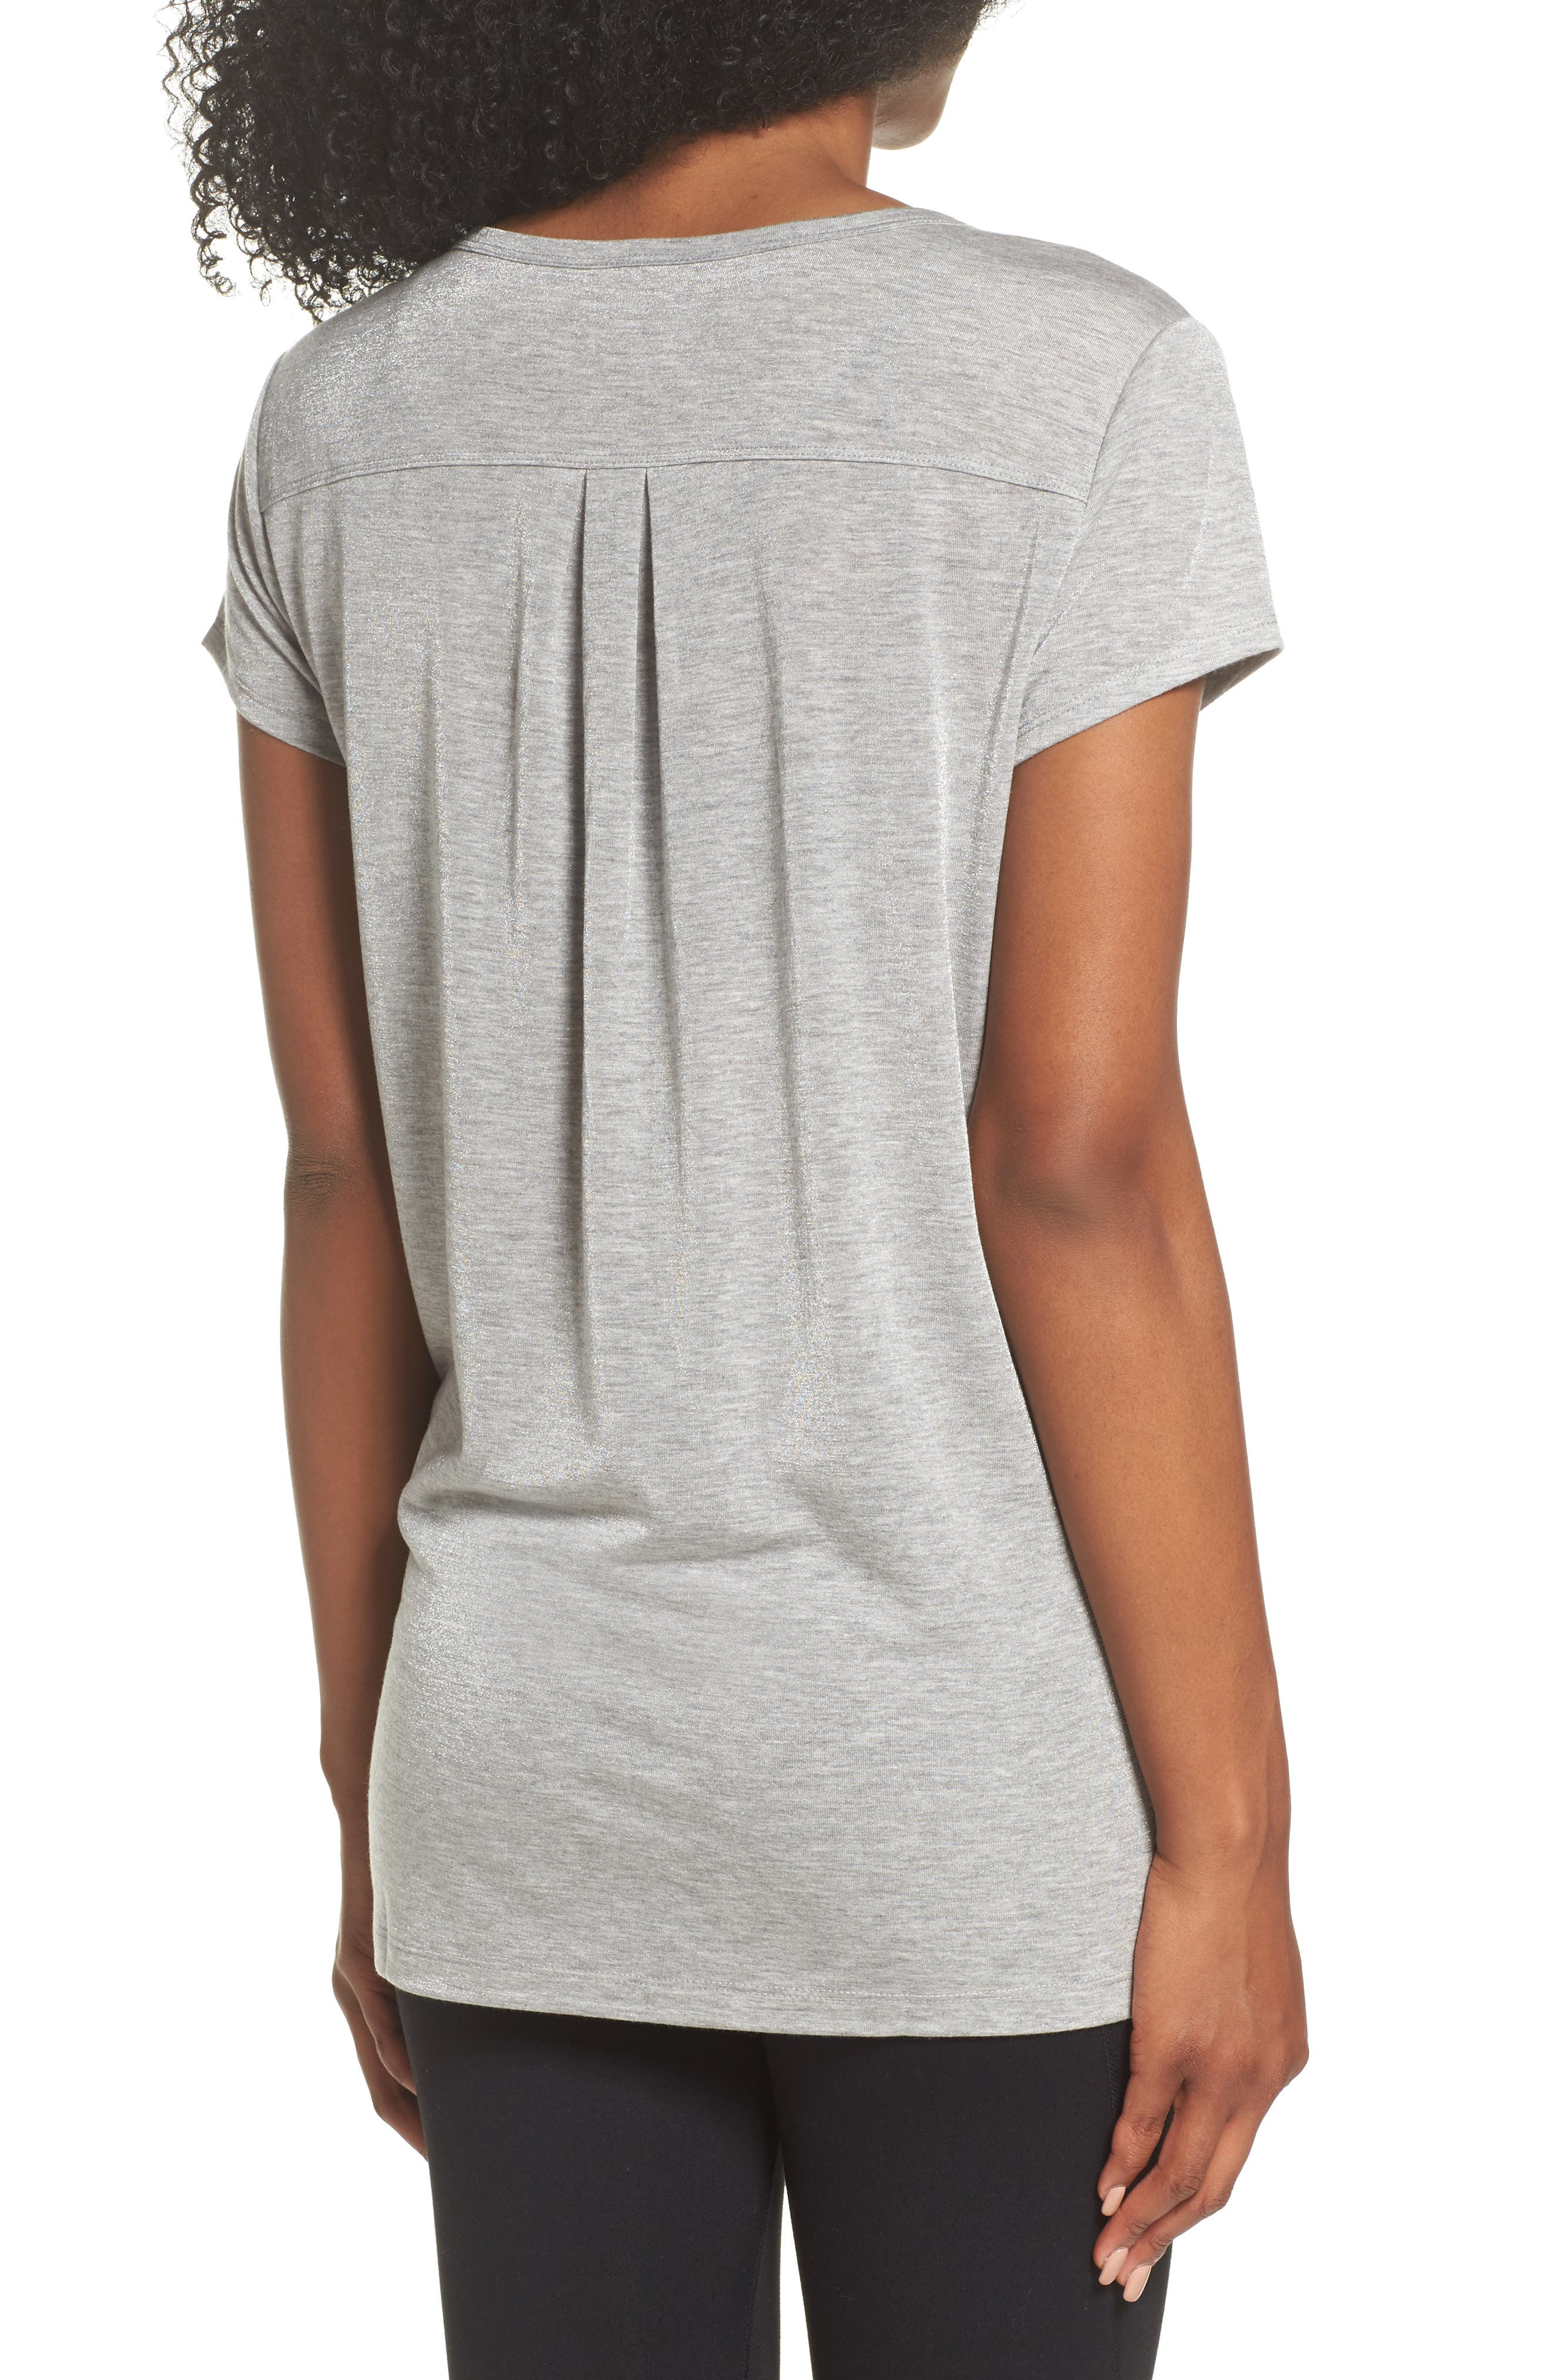 Boot Camp Tee,                             Alternate thumbnail 2, color,                             Grey Ash Heather